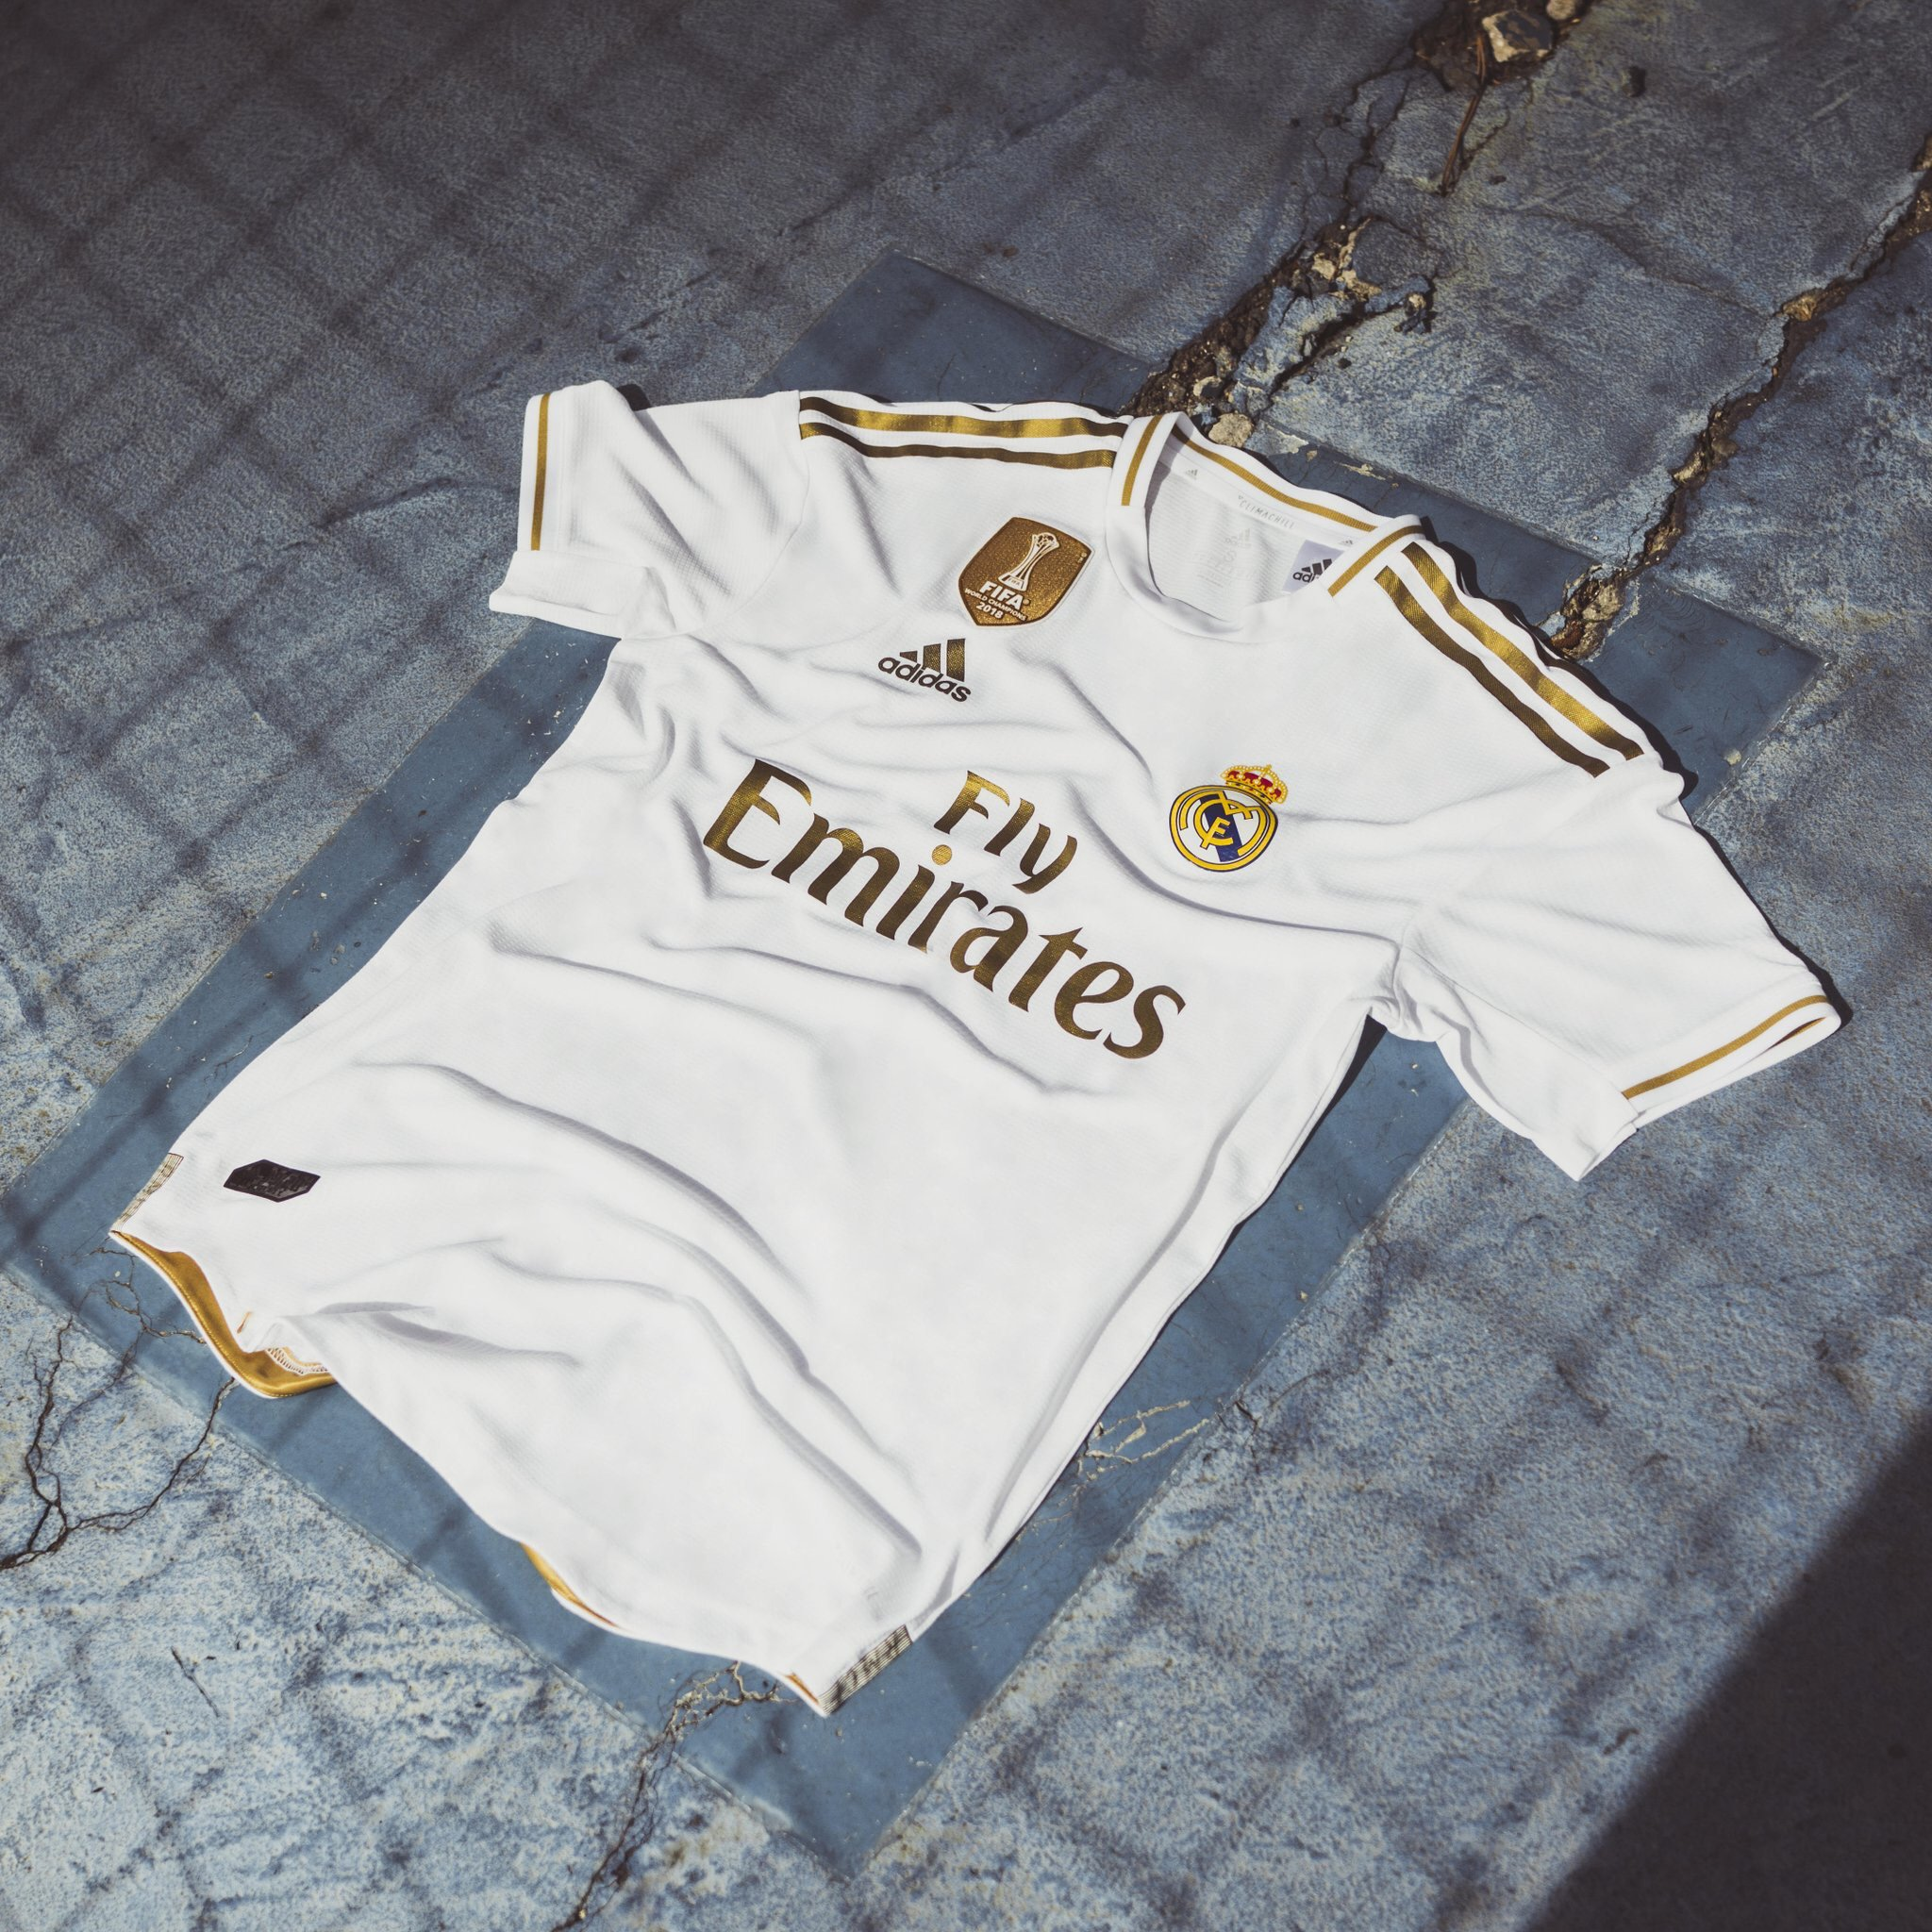 Real Madrid 2020 maillot domicile foot officiel